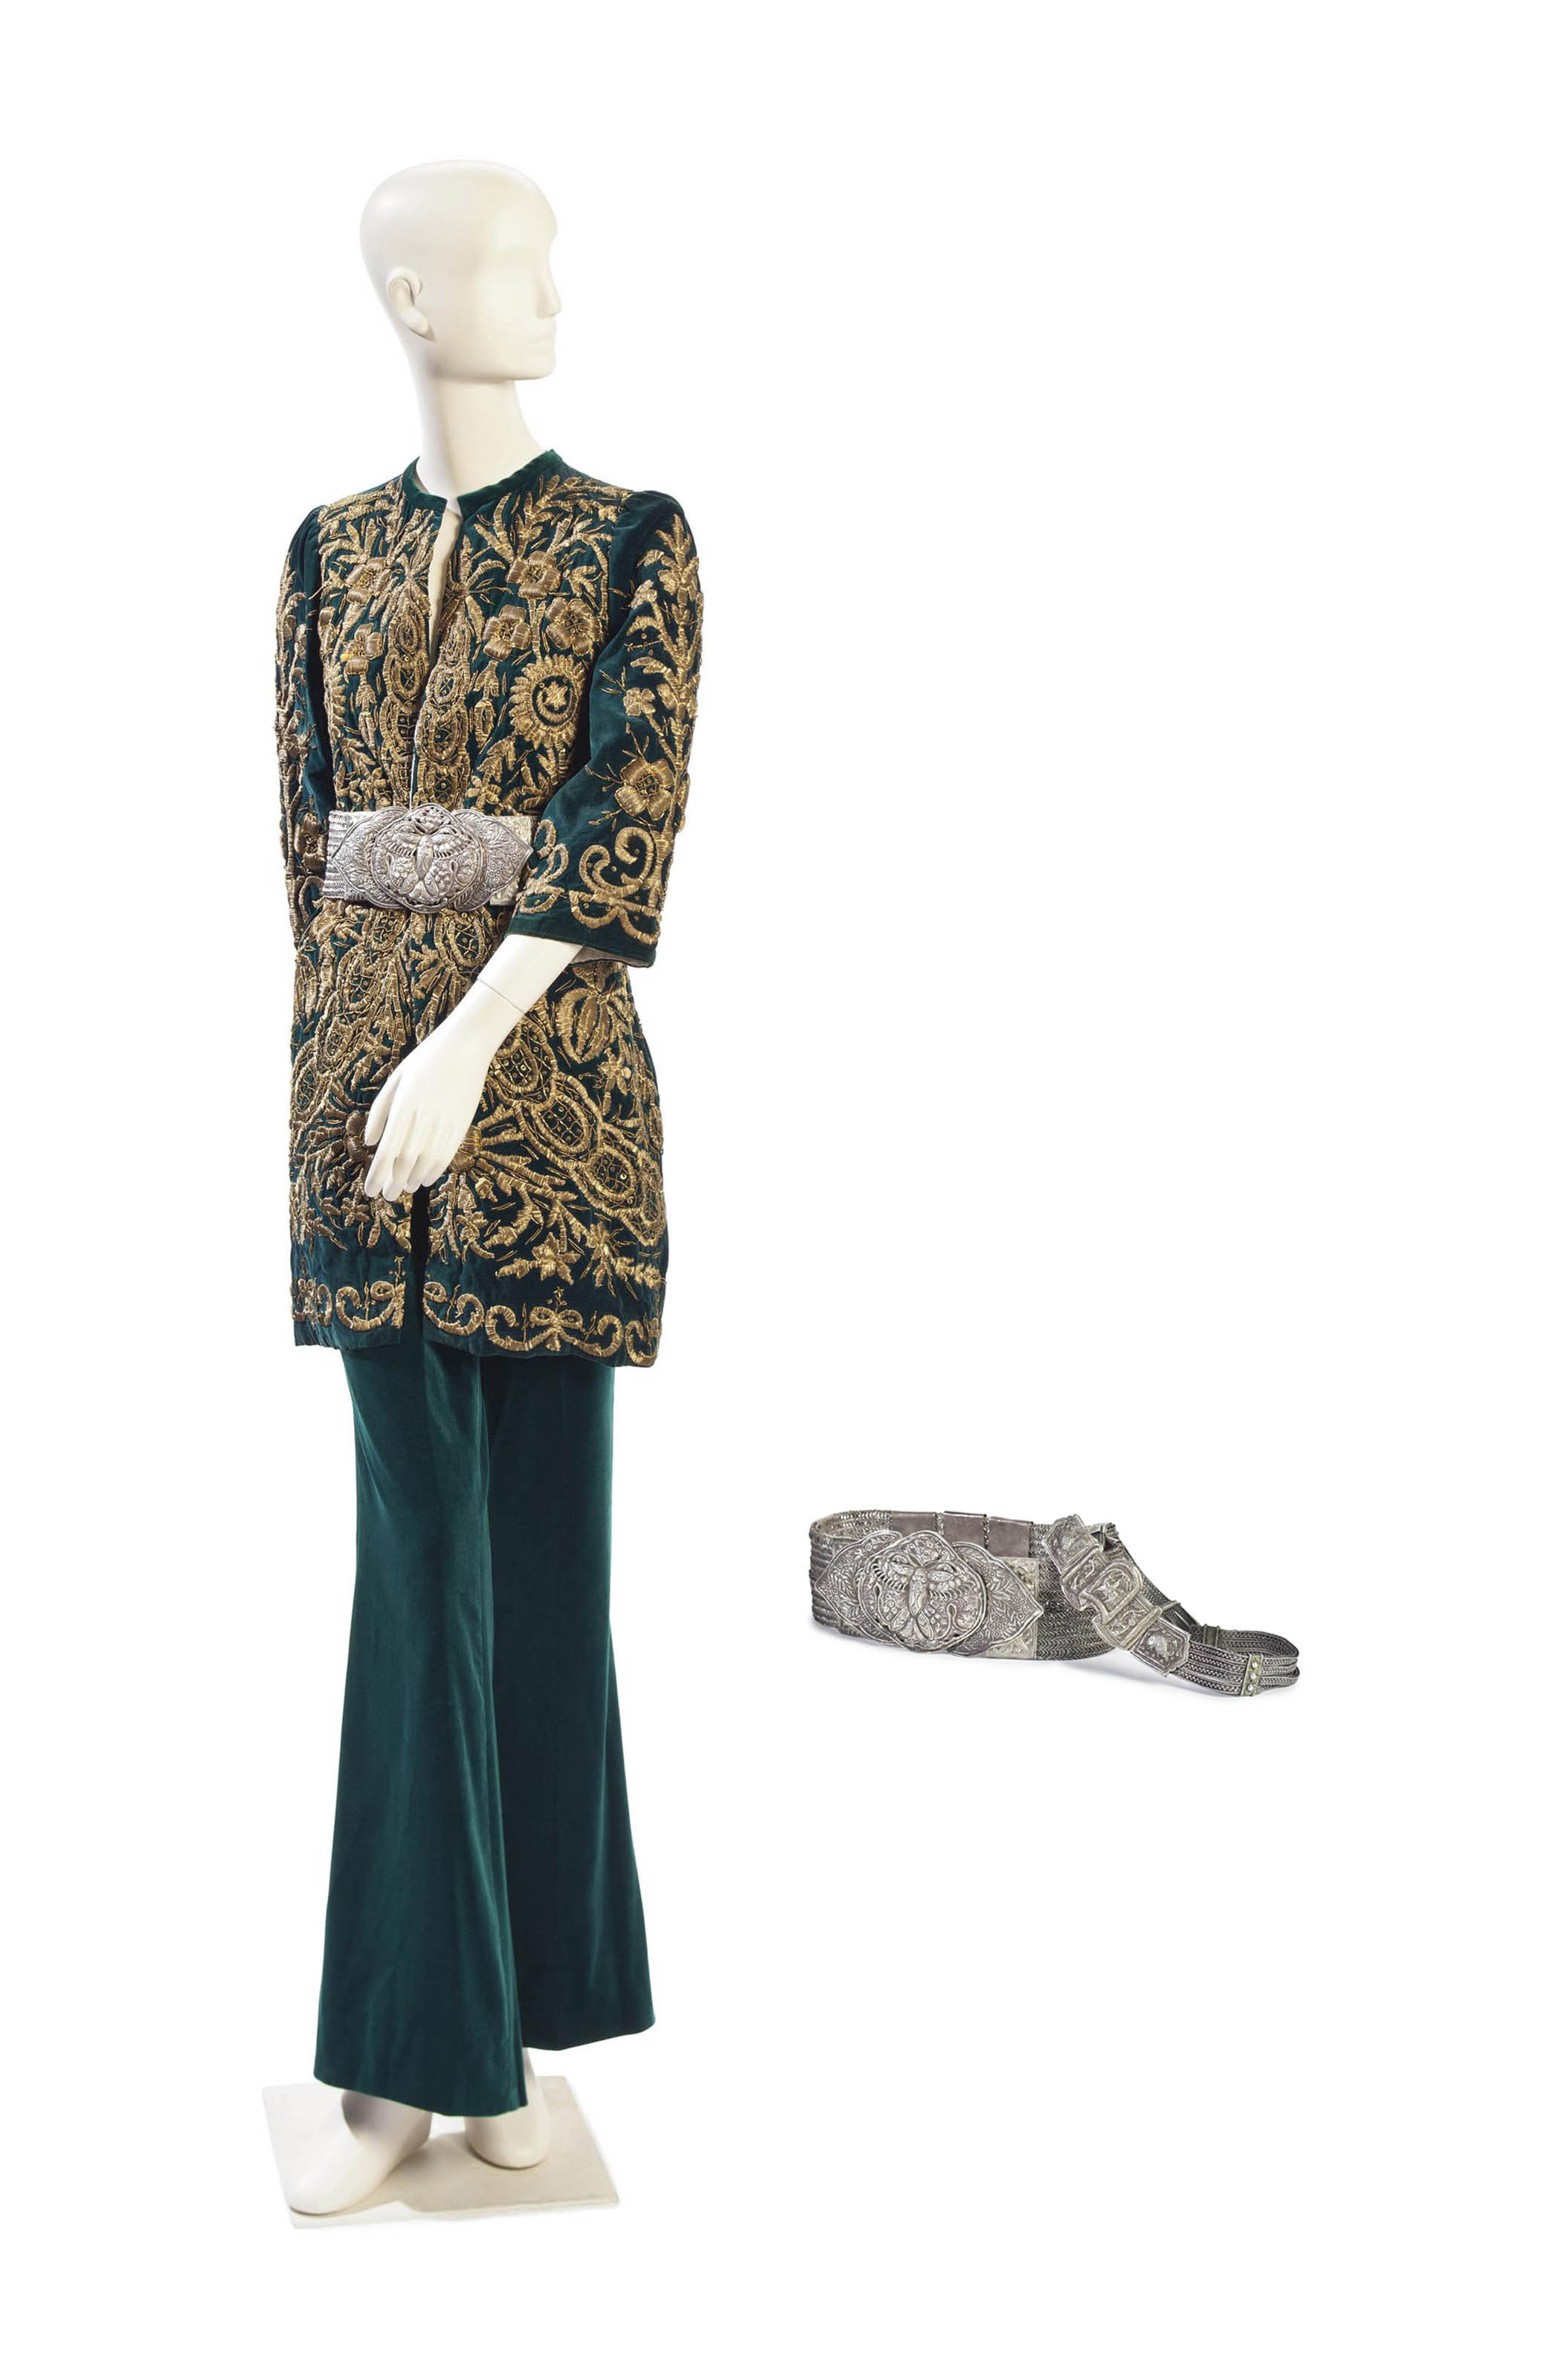 AN EVENING TROUSER SUIT OF BOTTLE GREEN VELVET WITH TWO WHITE-METAL BELTS